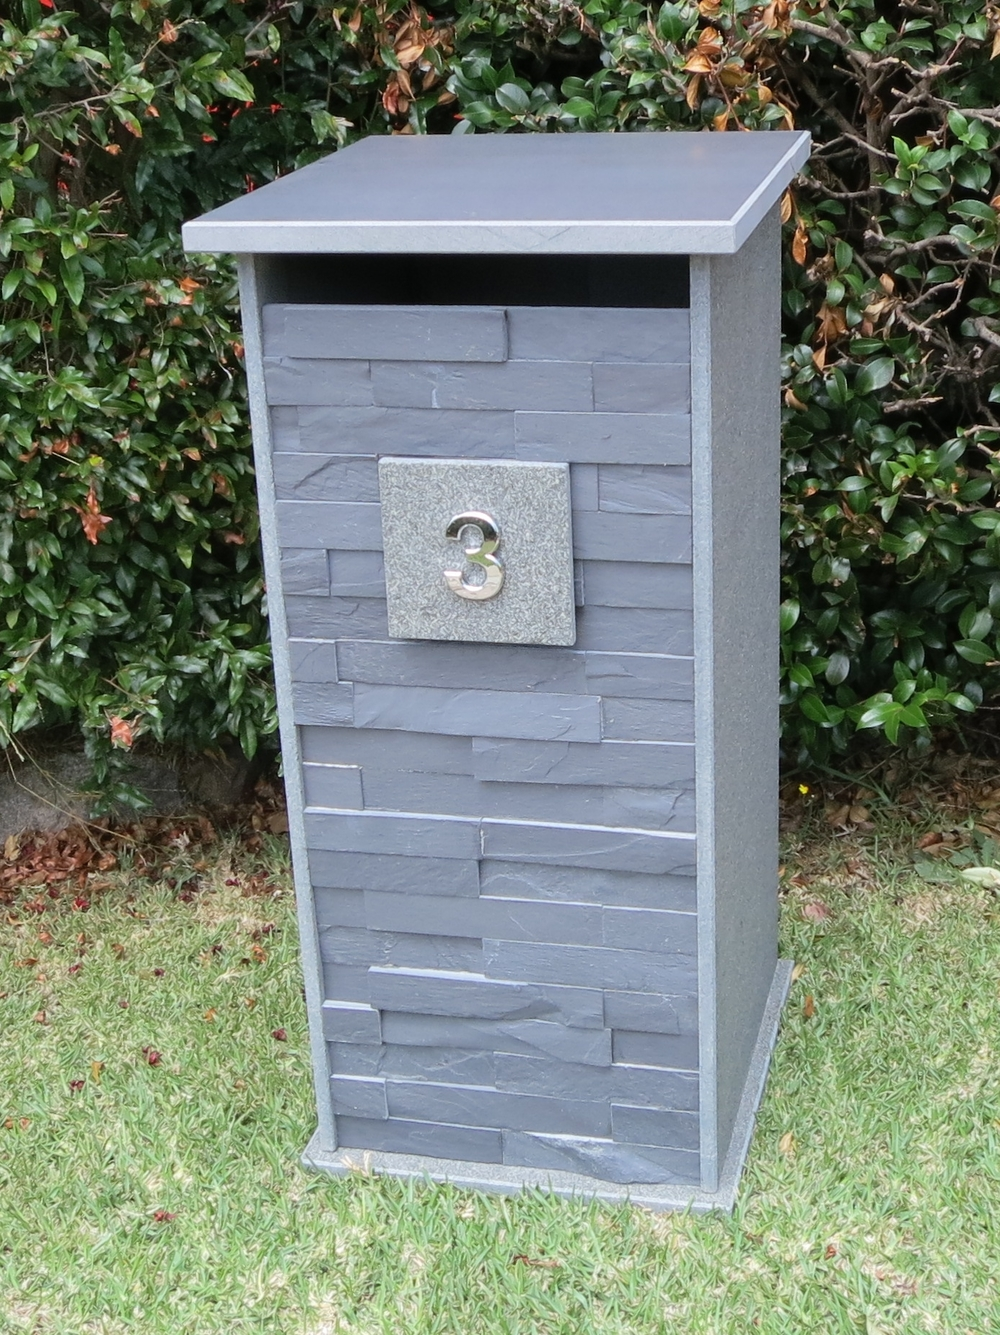 104. Bluestone letterbox customized letterbox for extra large envelops. One pc unit pick up from store only. 380x325mm floor size inside. Outside dimentions 430x410x850mm. $750.